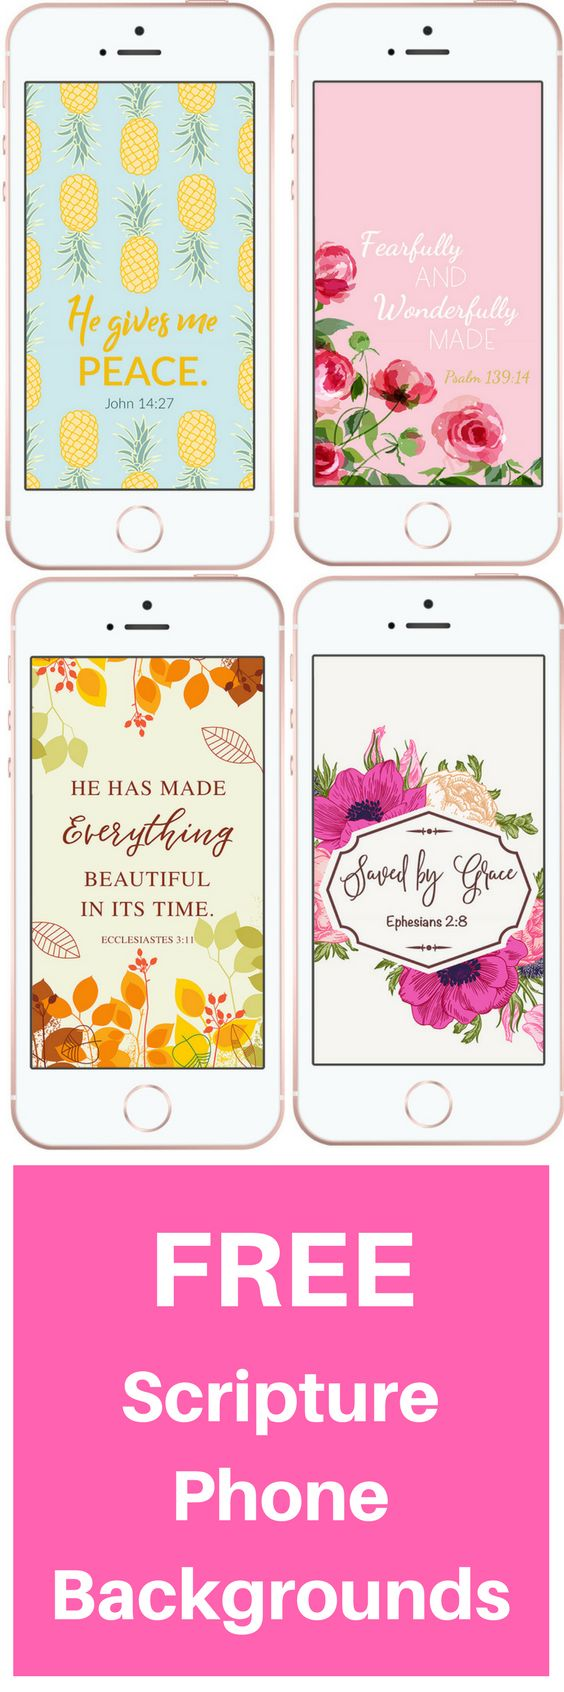 Add some Faith to your phone :) FREE christian phone backgrounds | scripture wallpapers | free Christian downloads | Inspirational phone wallpapers